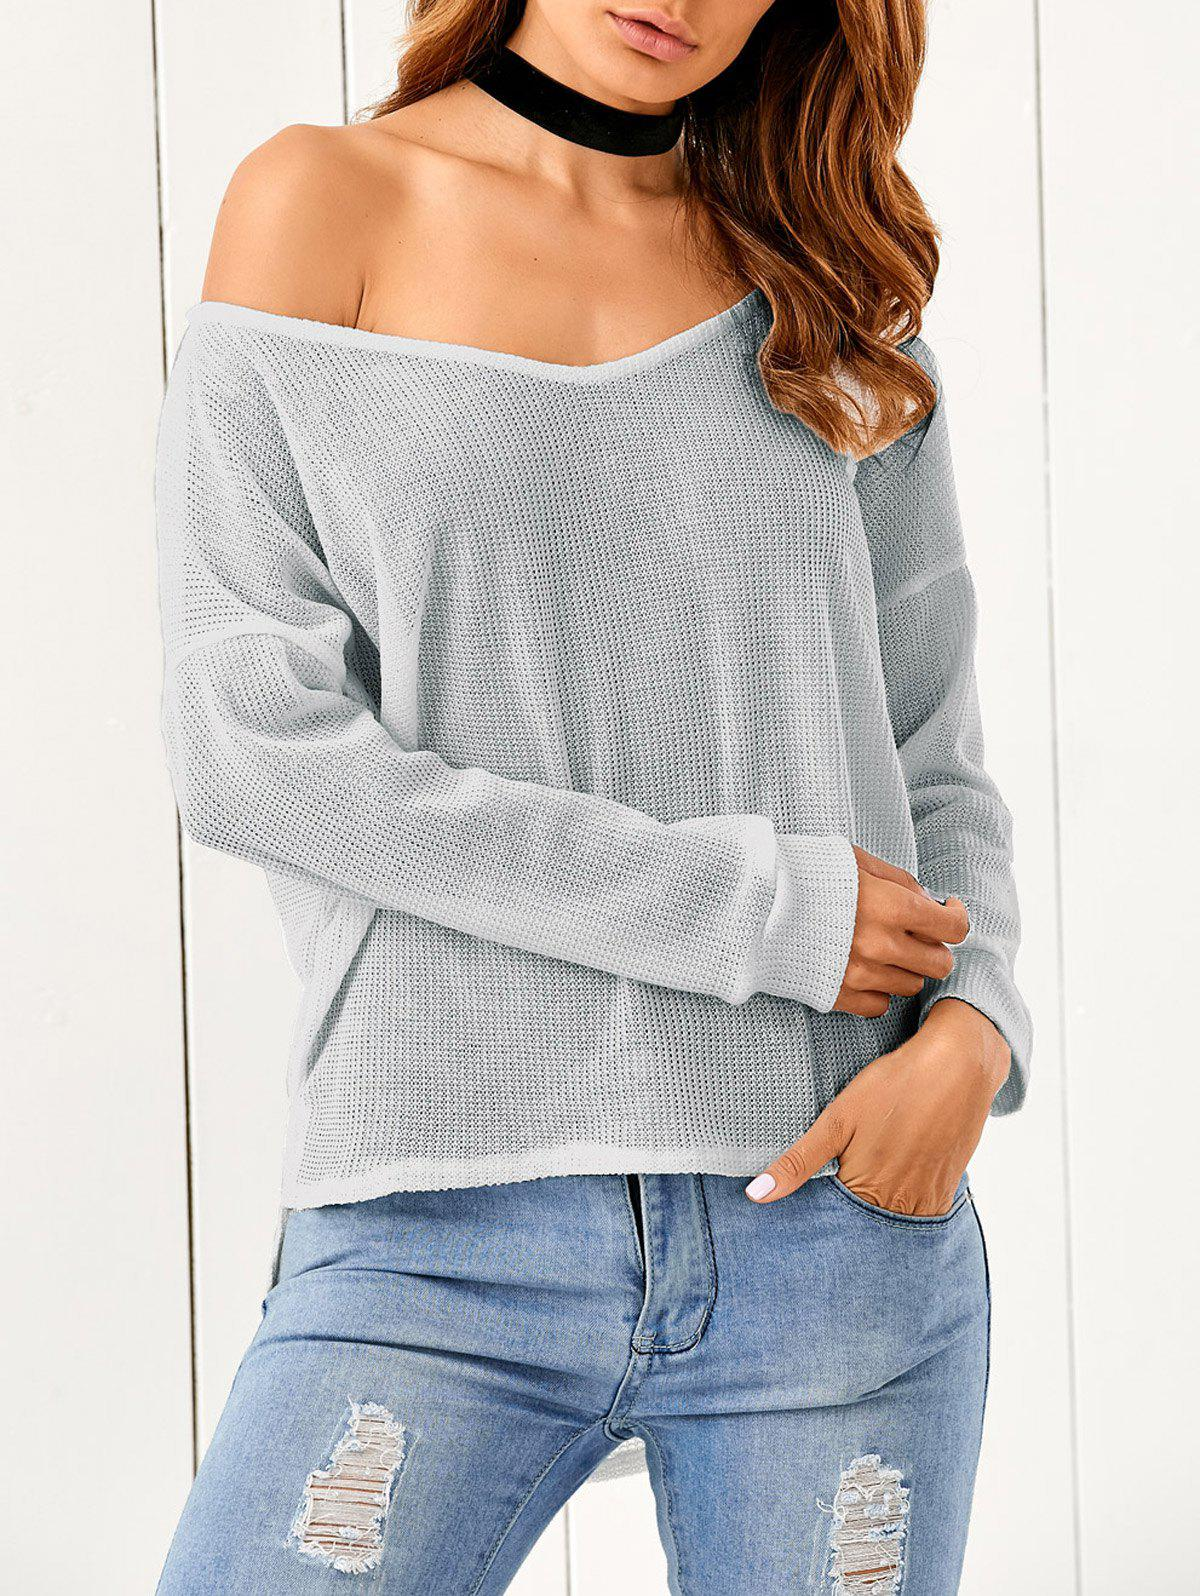 Shop our Collection of Women's One Shoulder Sweaters at europegamexma.gq for the Latest Designer Brands & Styles. FREE SHIPPING AVAILABLE!